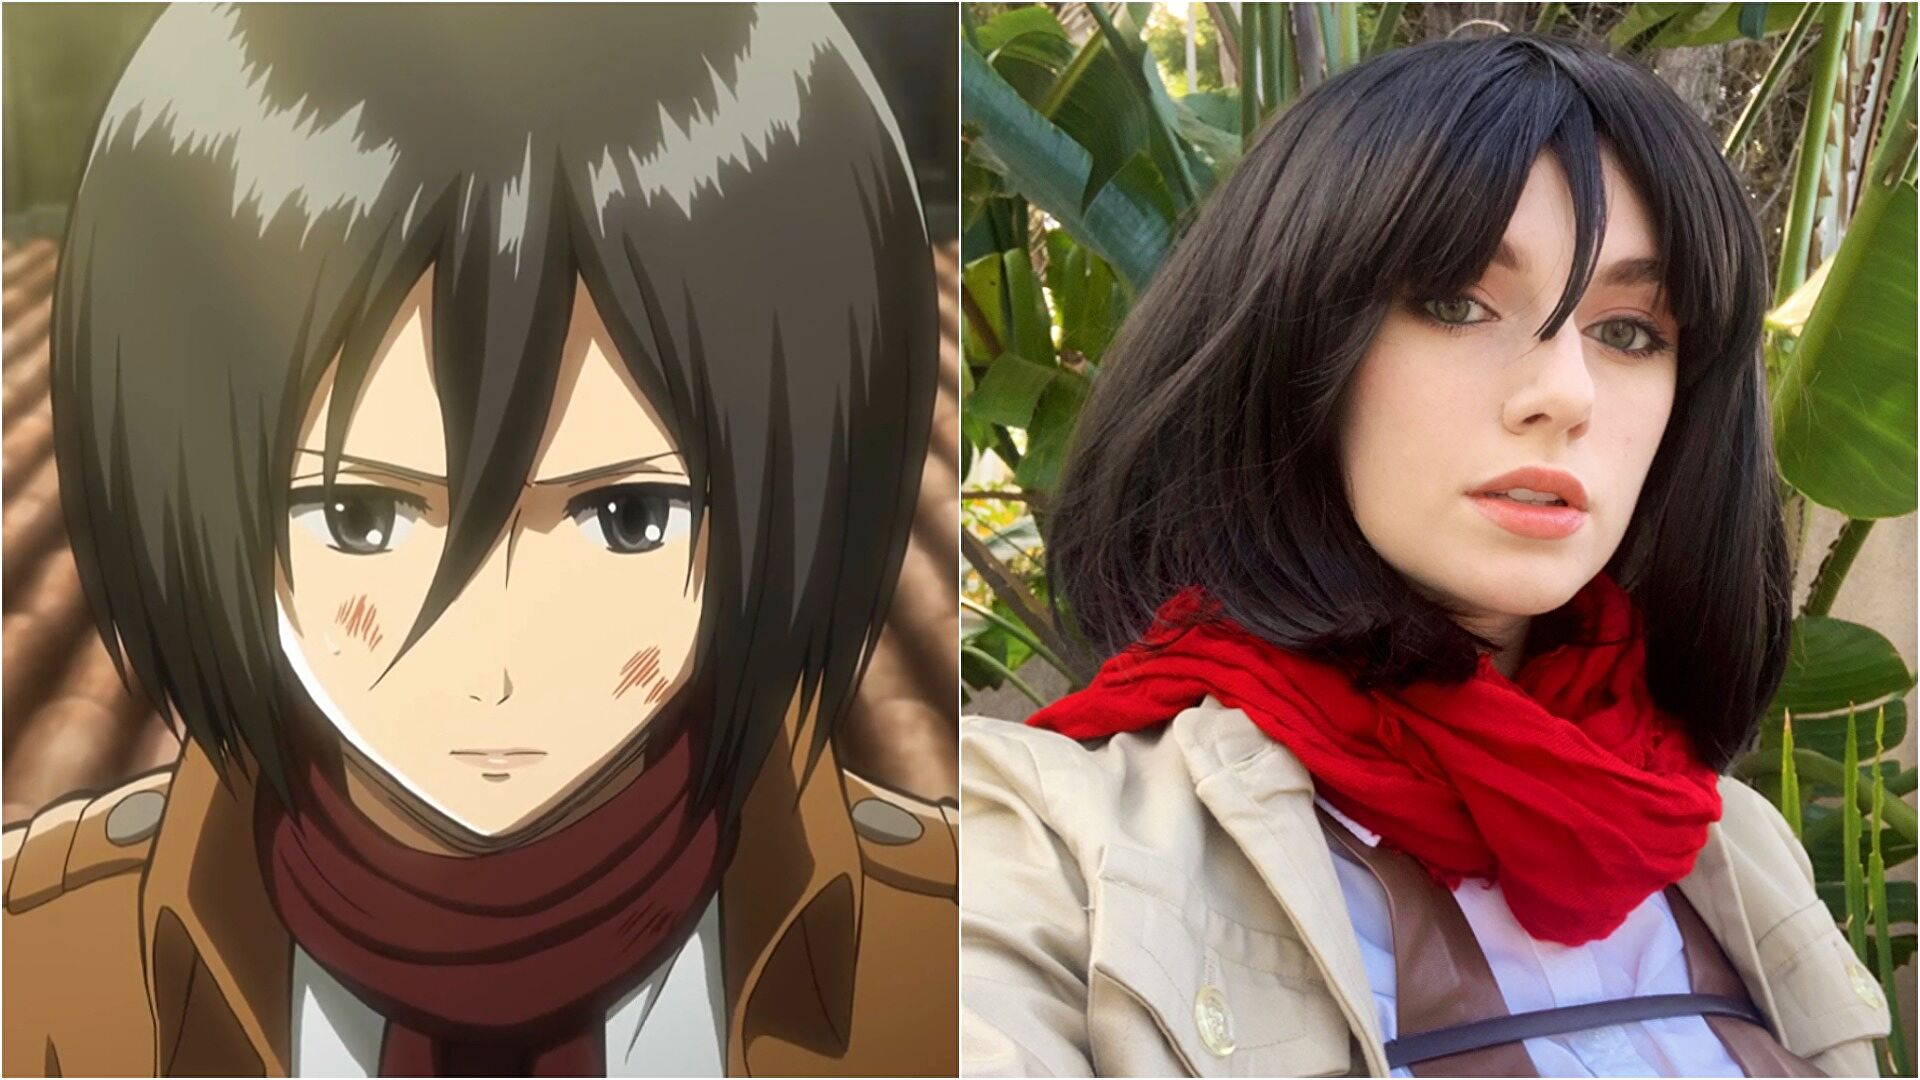 How To Make An Attack On Titan Cosplay Using Clothing You Already Have Cosplay Central